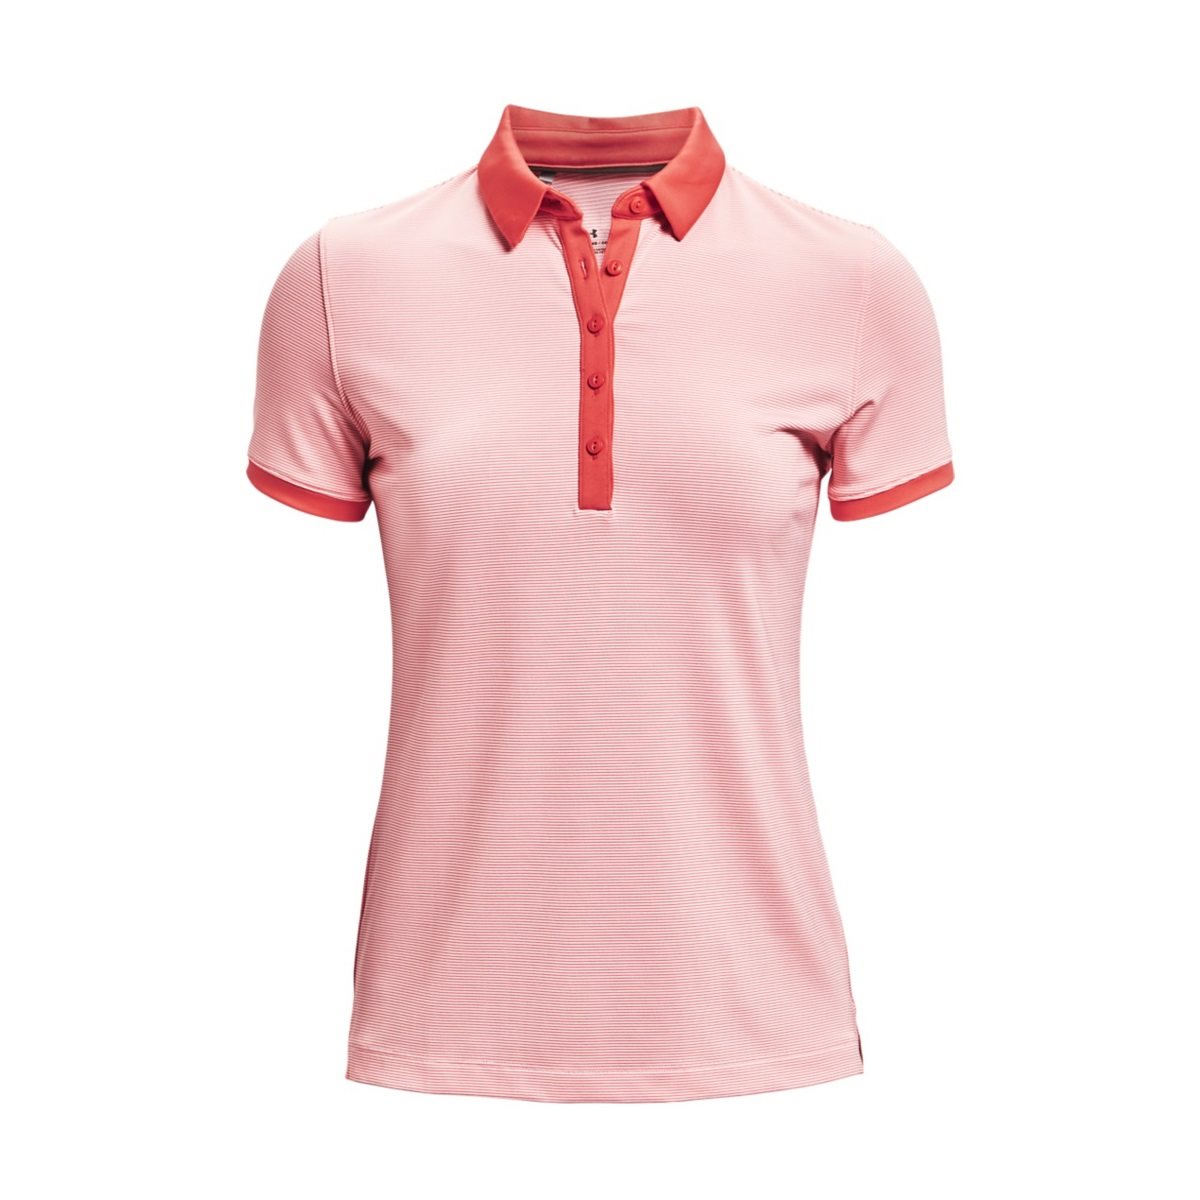 Under Armour dames golfpolo Zinger Novelty roze